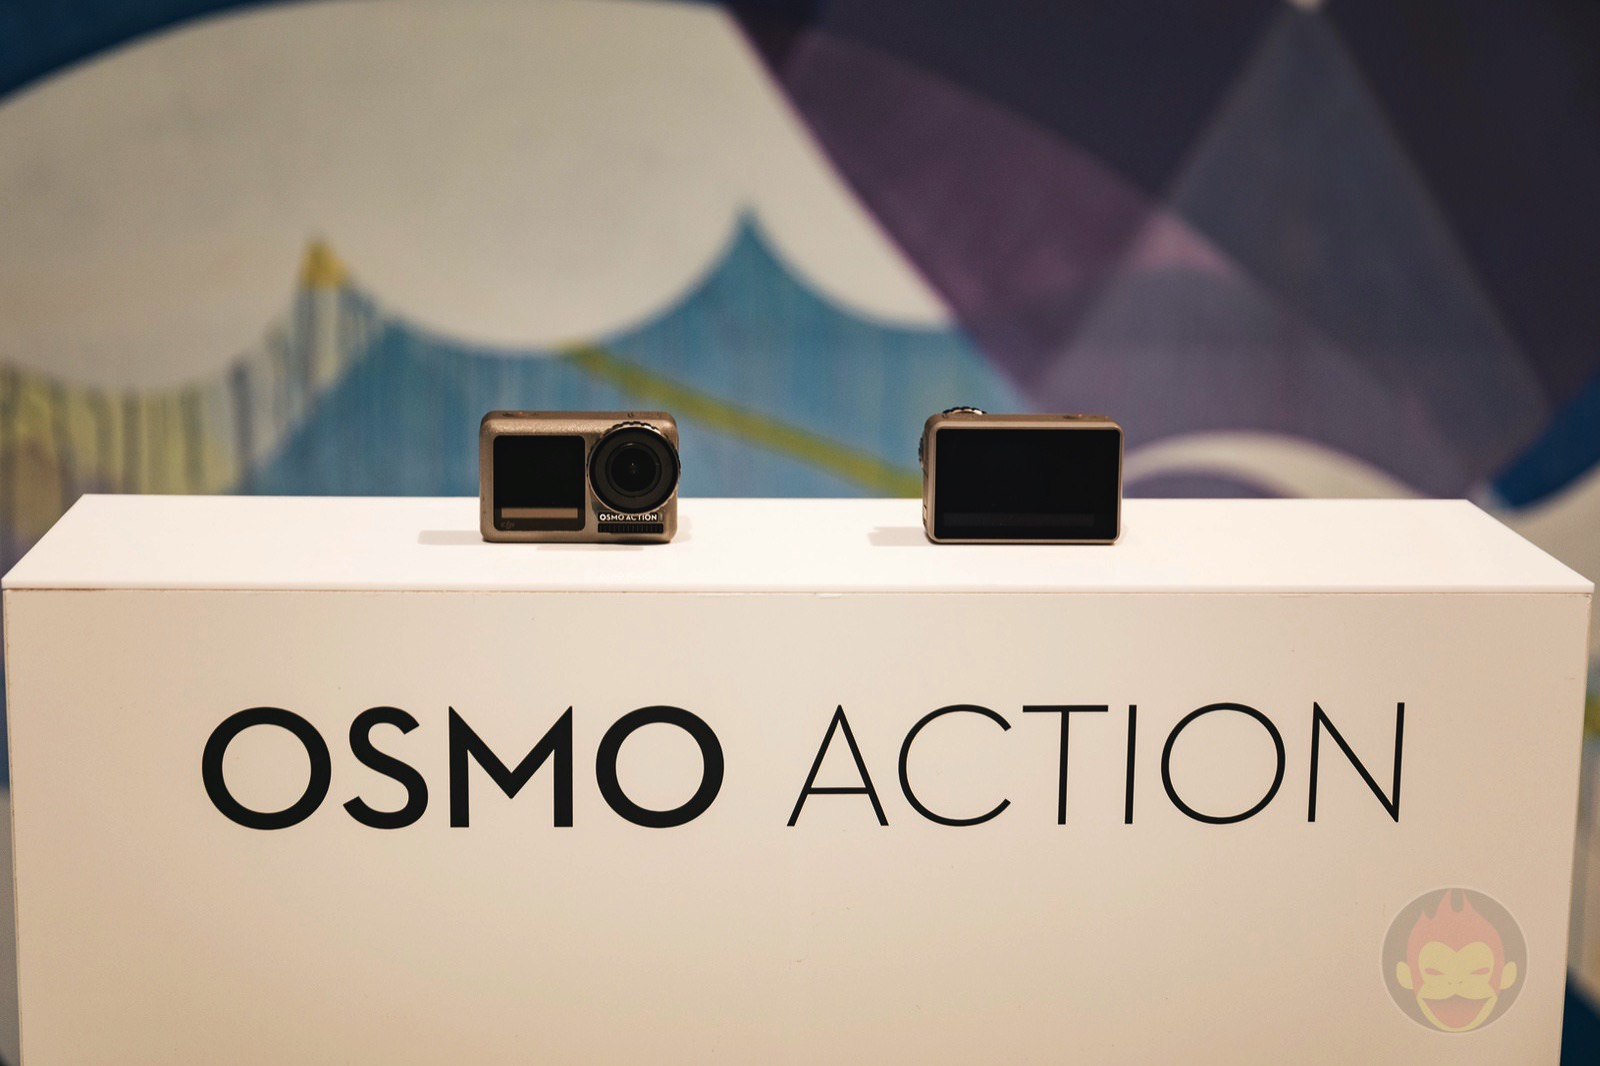 DJI-OSMO-Action-Hands-on-15.jpg